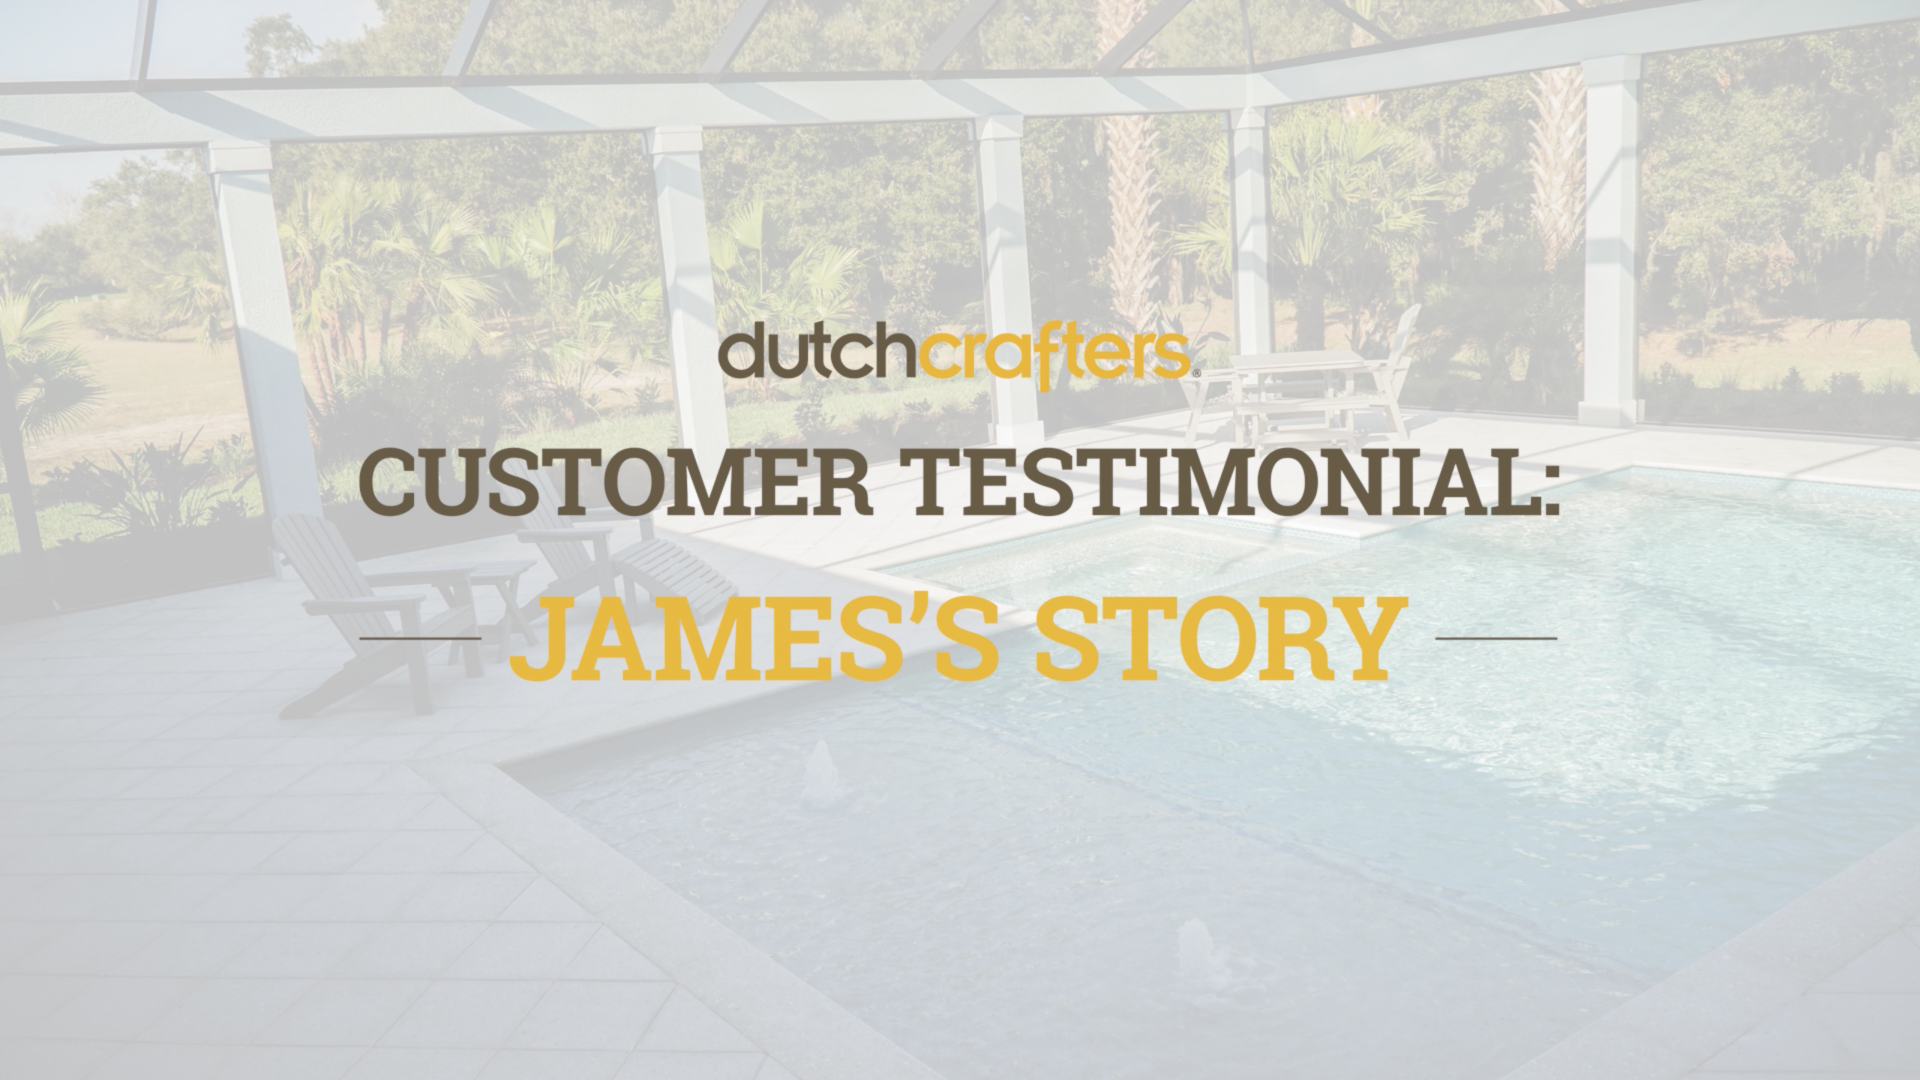 DutchCrafters Customer Testimonial James's Story